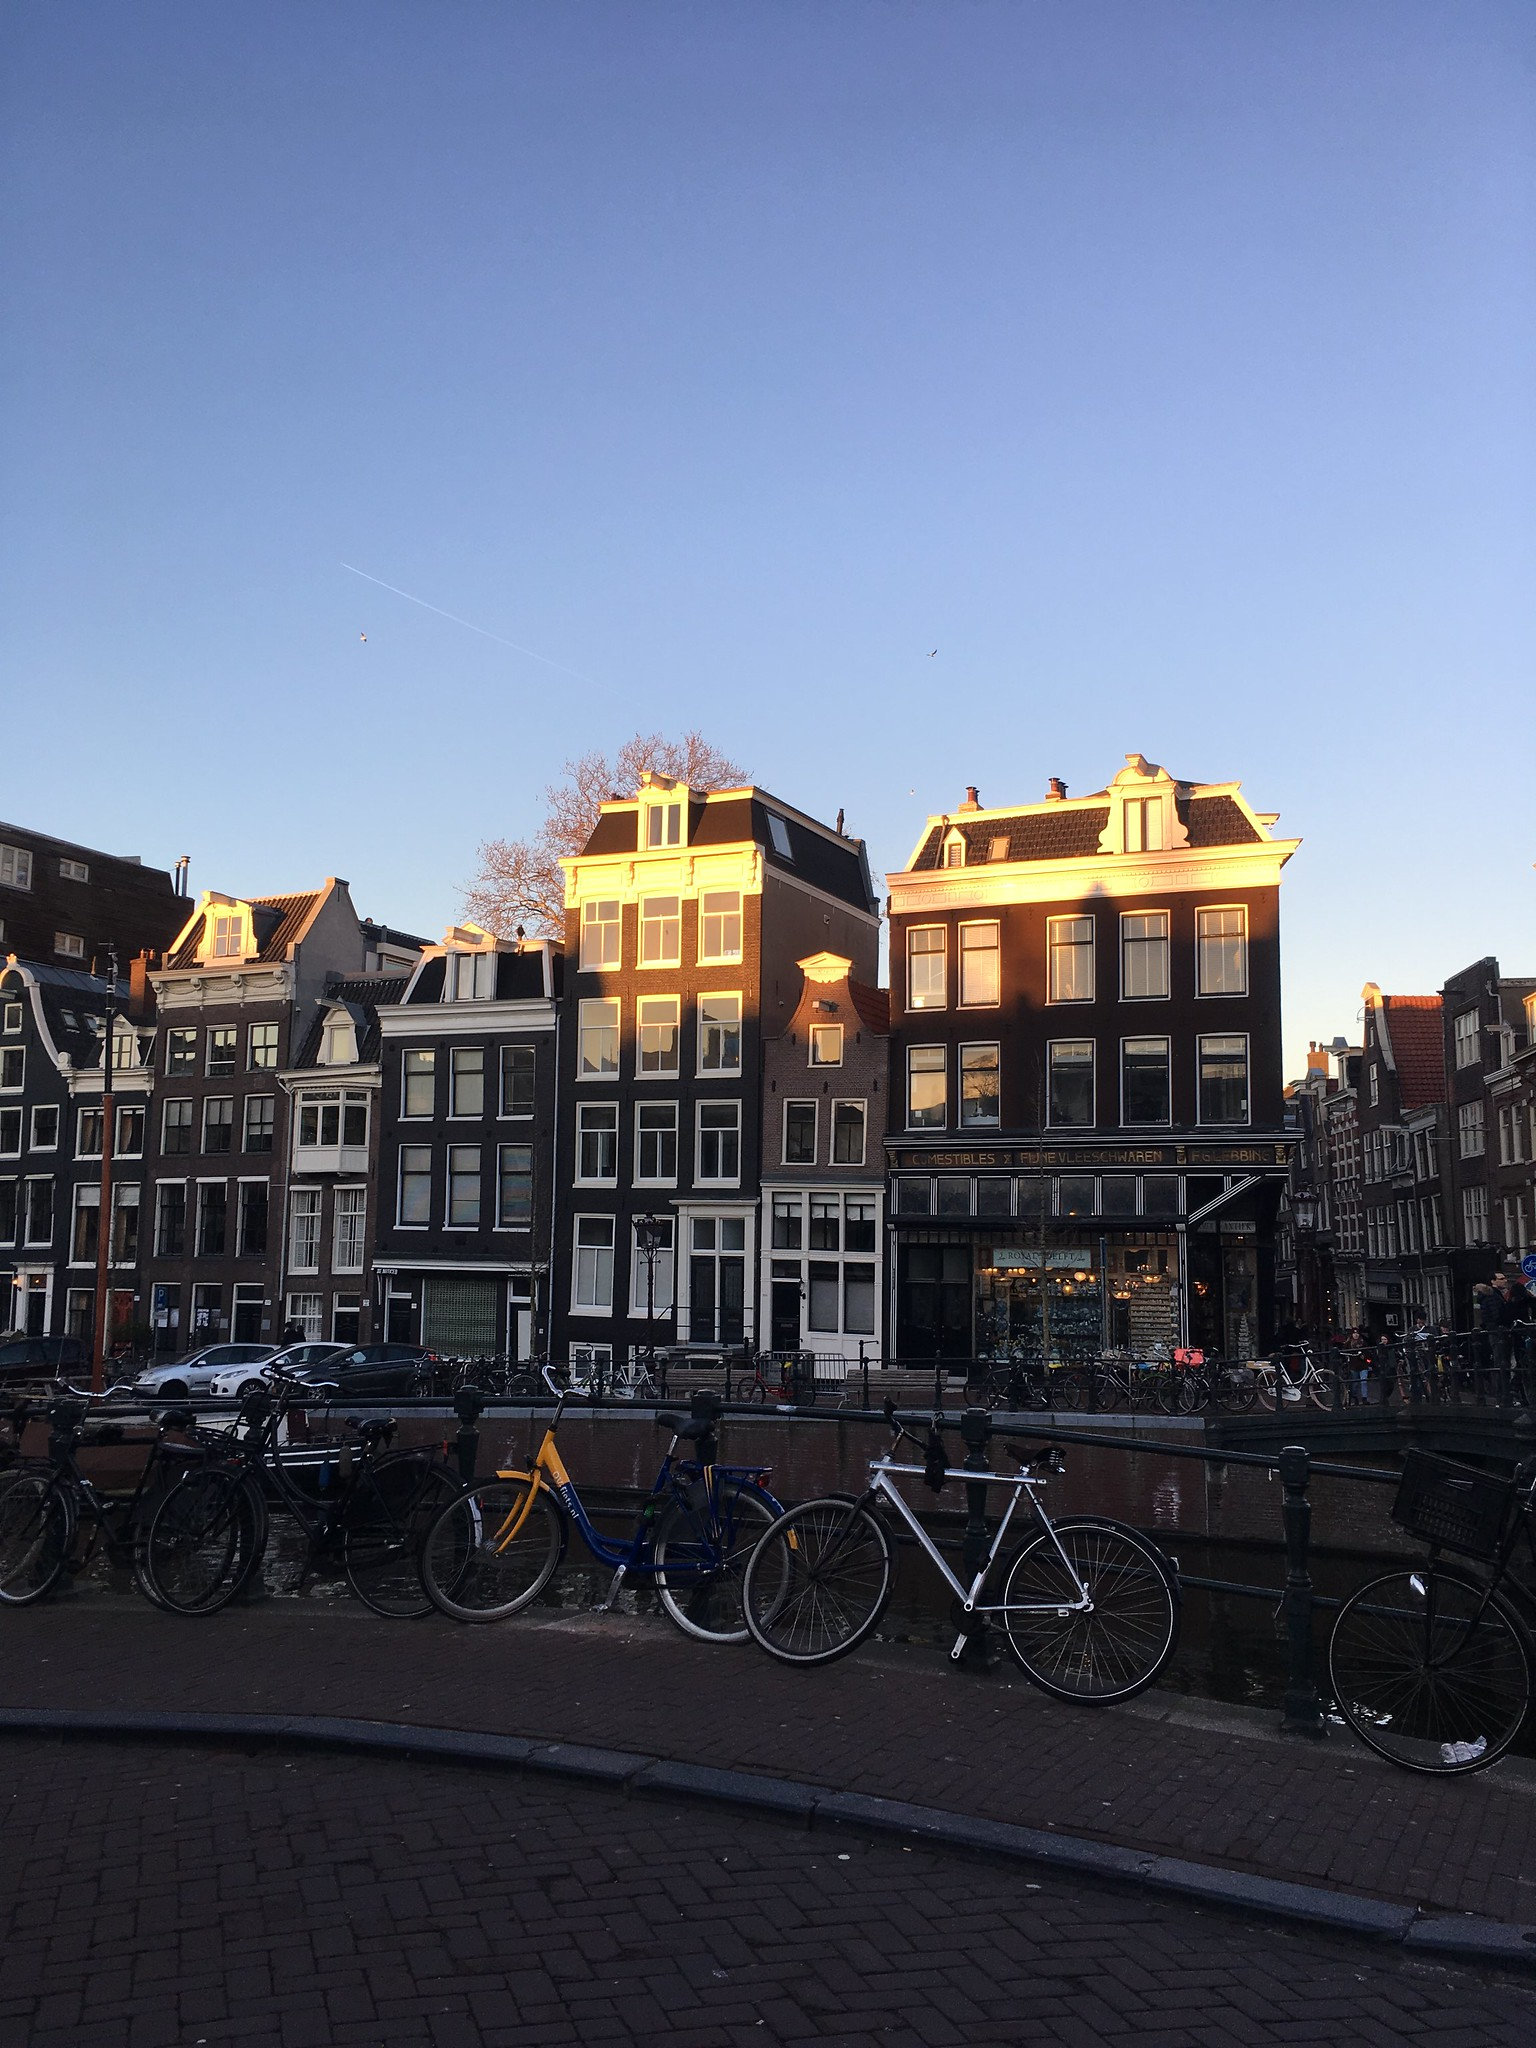 Fun on fiets: An update from The Hague